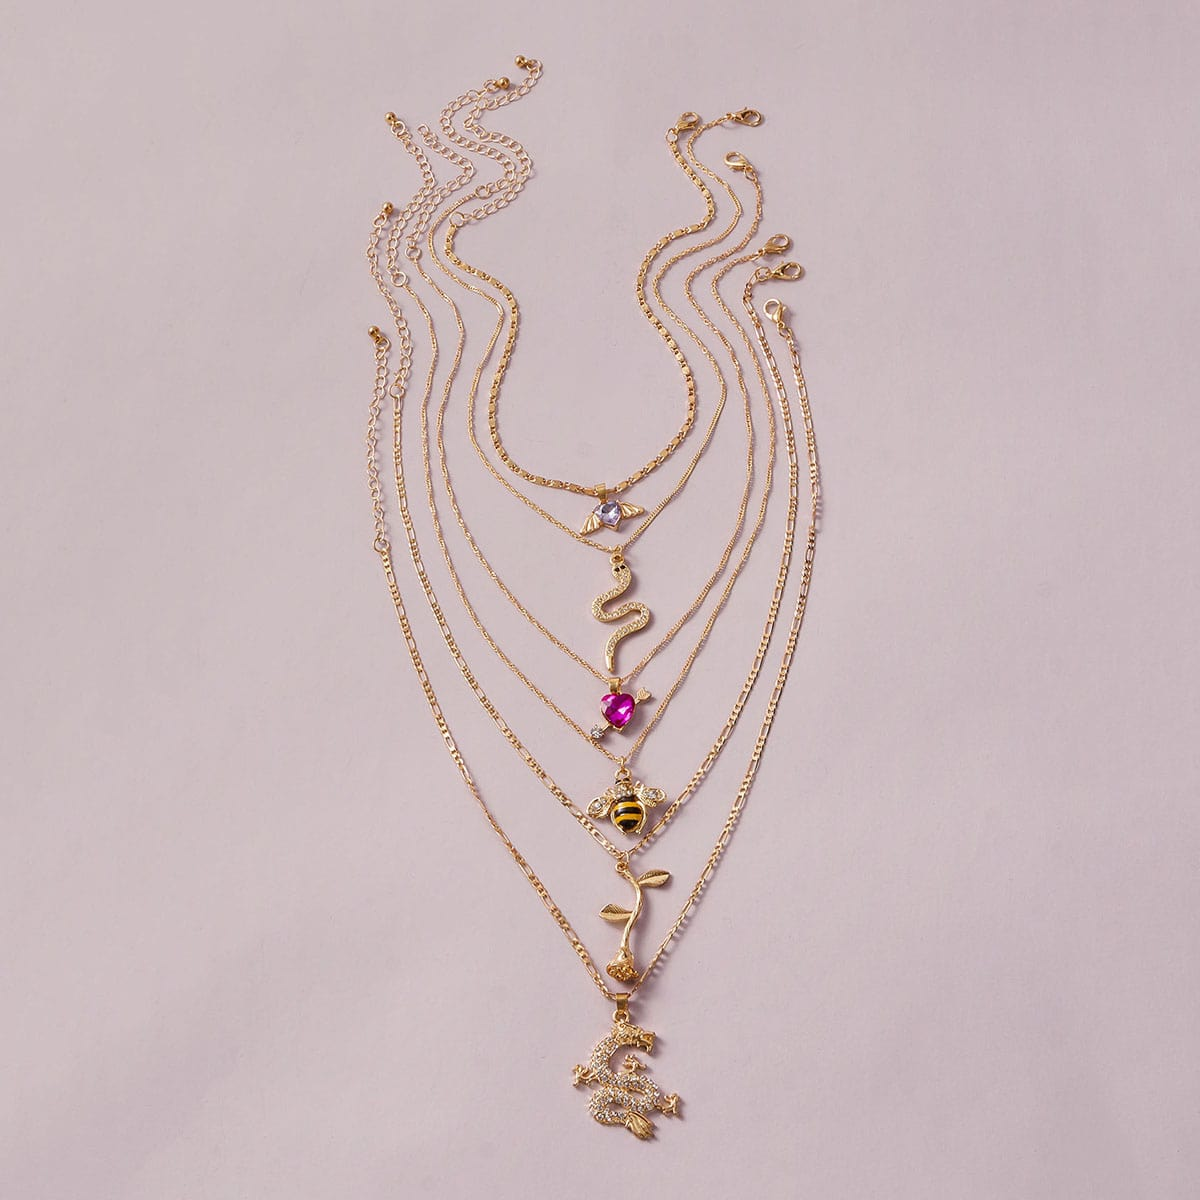 6pcs Rose & Bee Charm Necklace